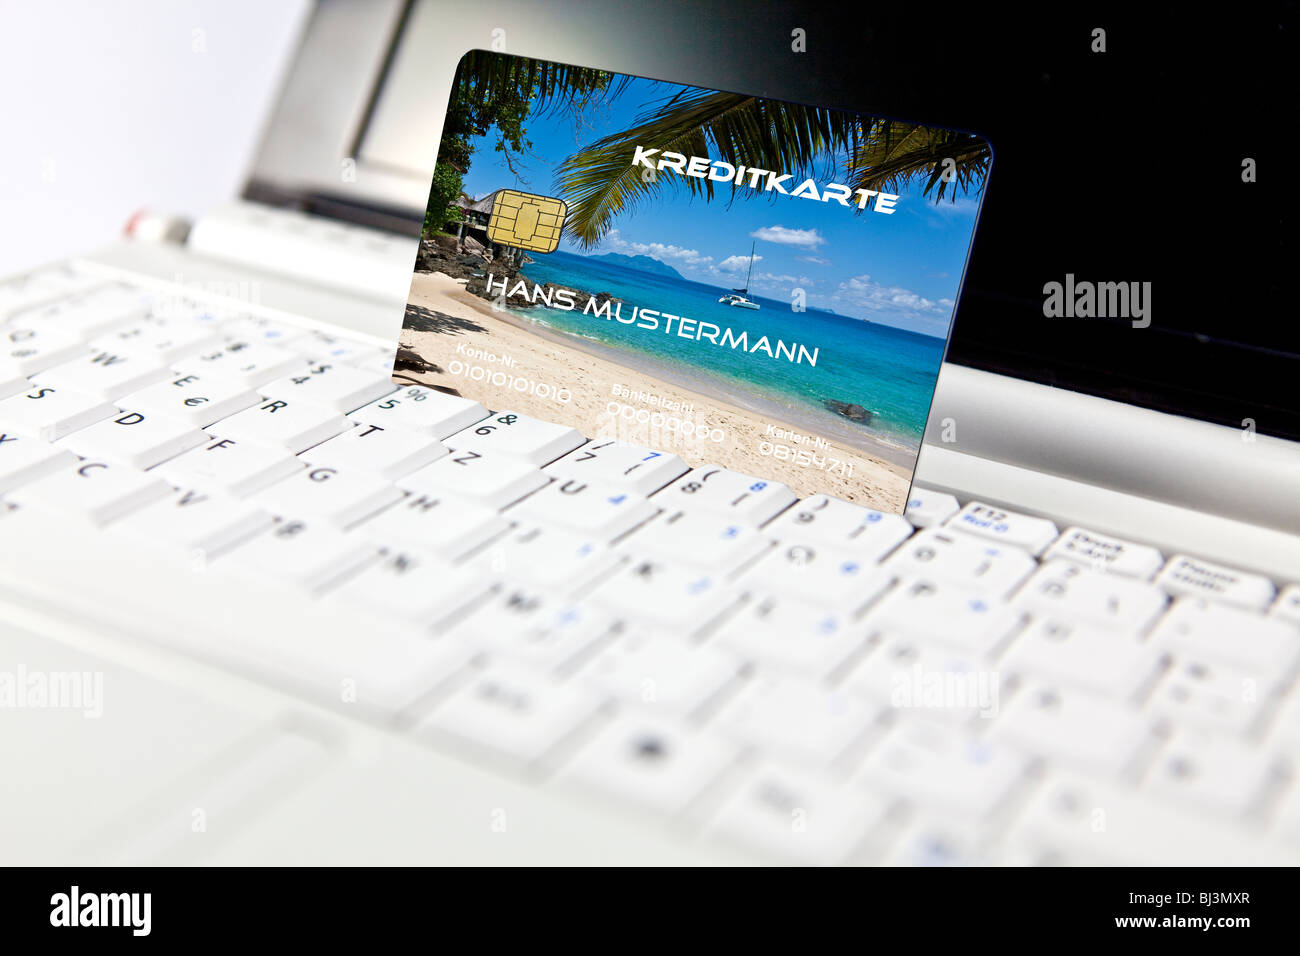 Credit card at a PC, notebook, symbolic image for booking holidays online Stock Photo